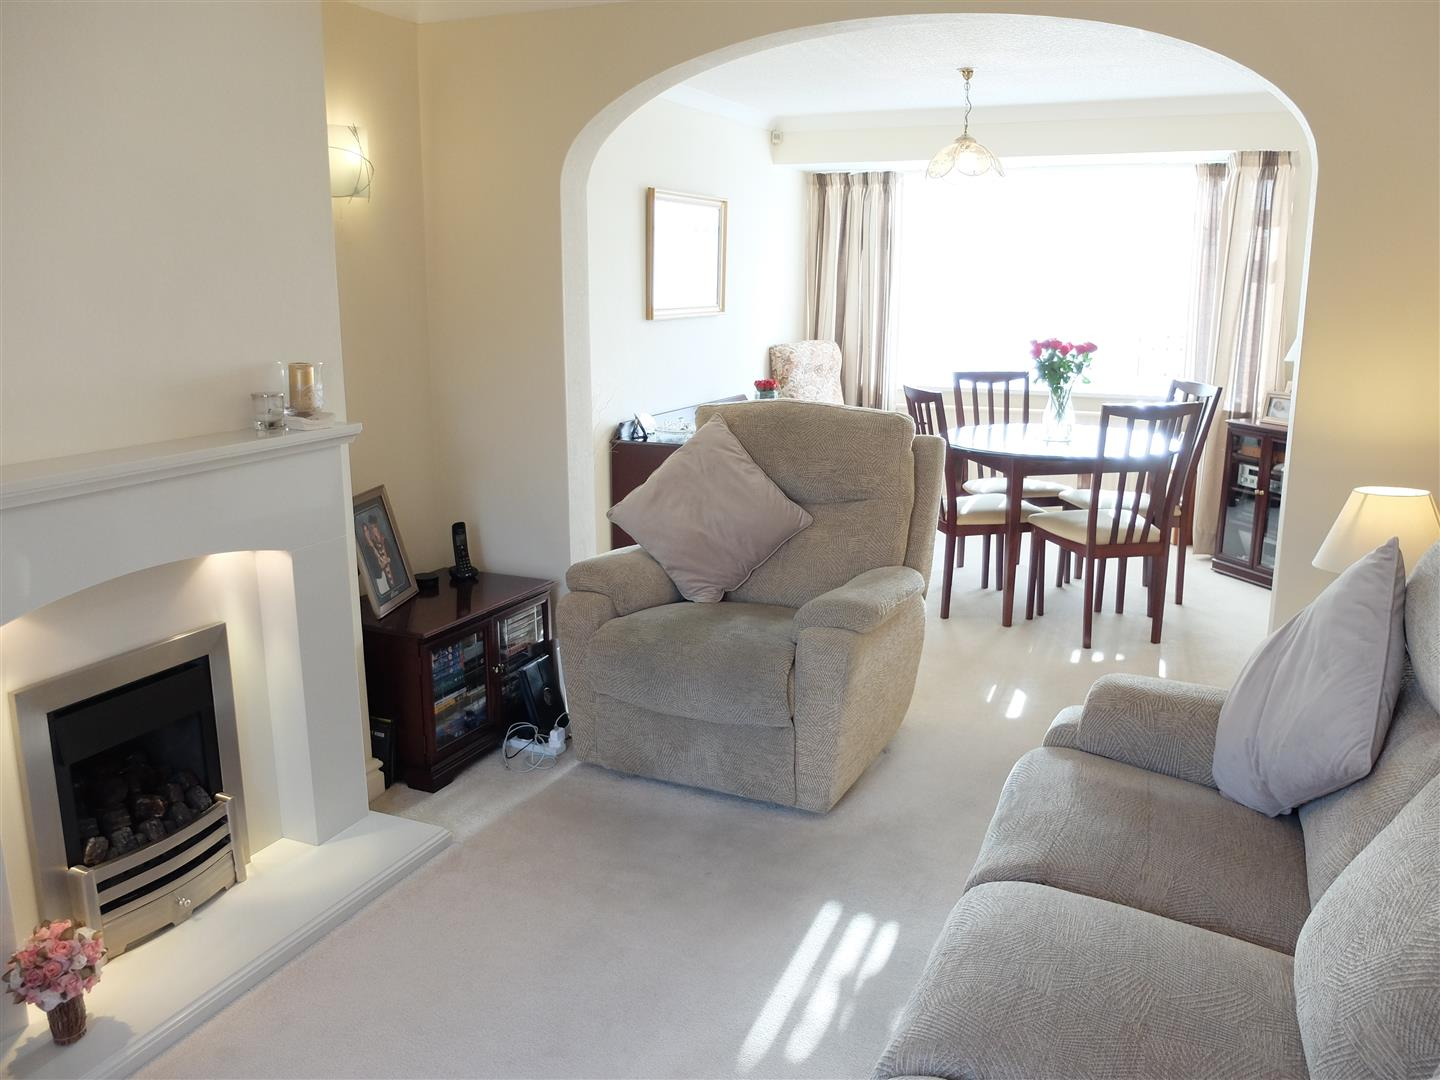 4 Bedrooms House - Semi-Detached For Sale 21 Beaumont Road Carlisle